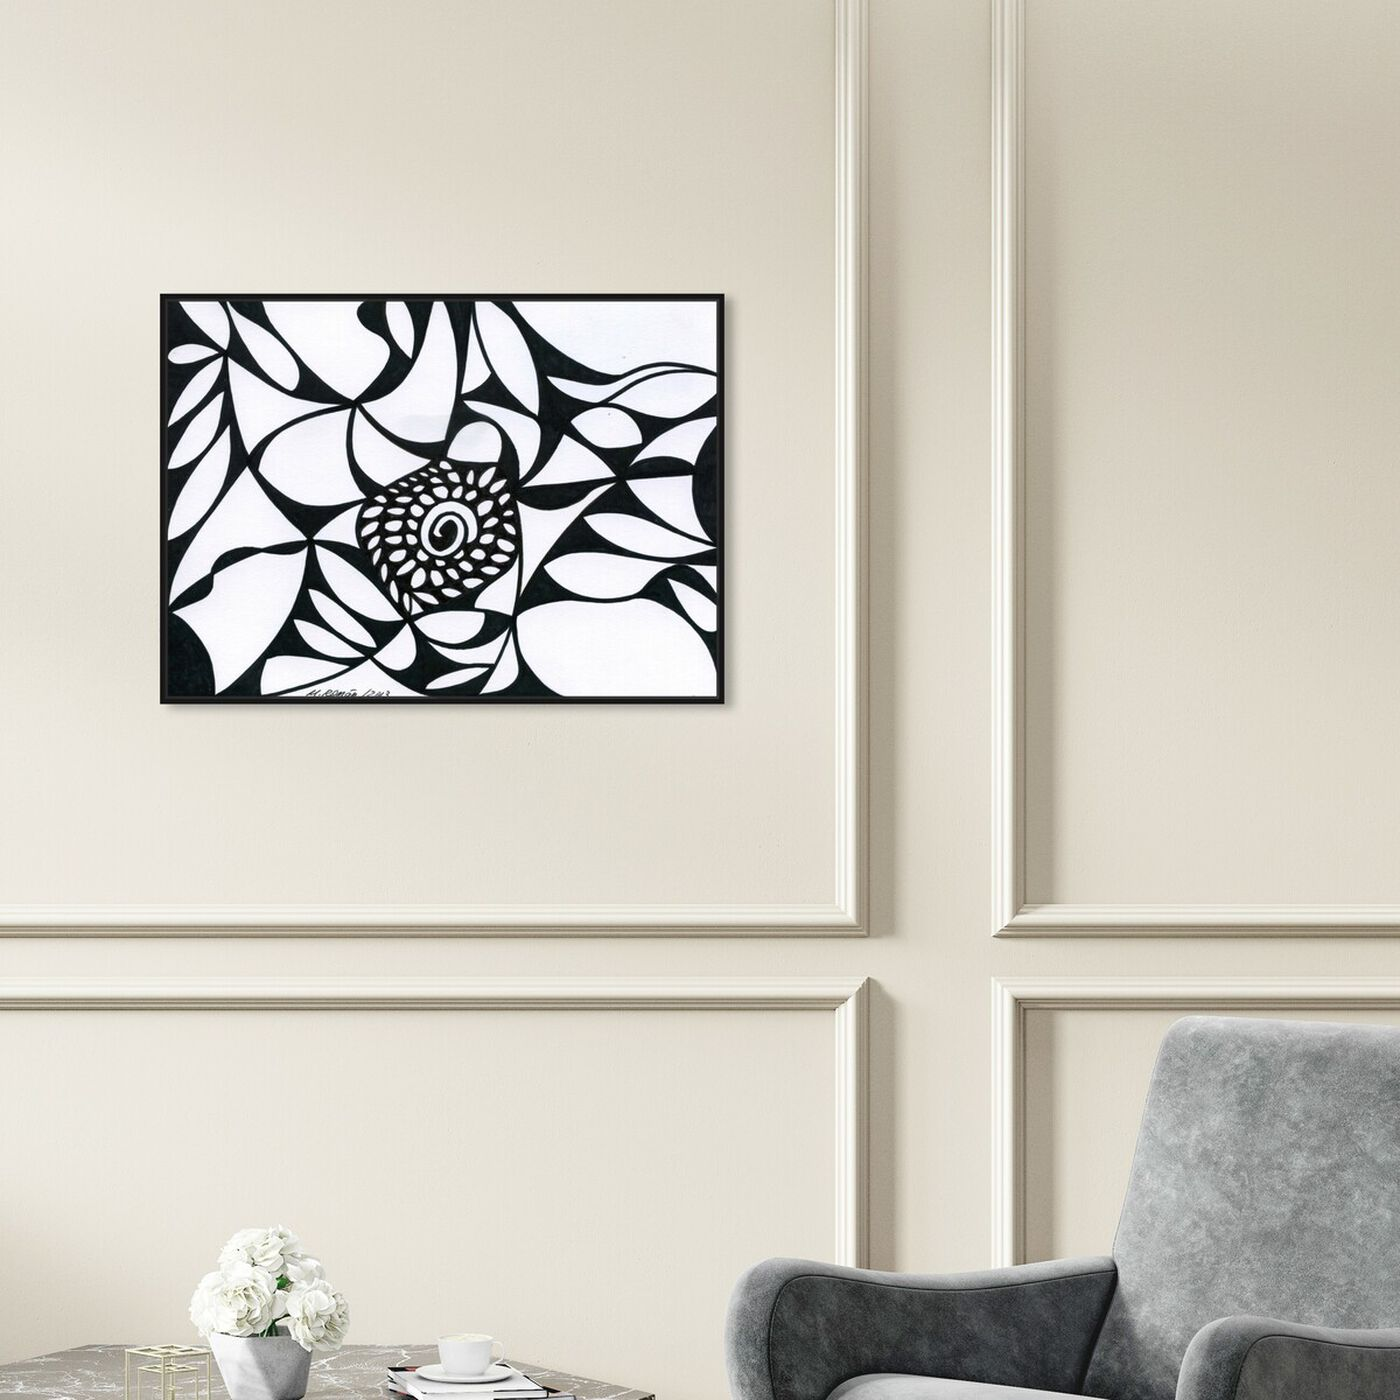 Hanging view of Blossom featuring abstract and shapes art.